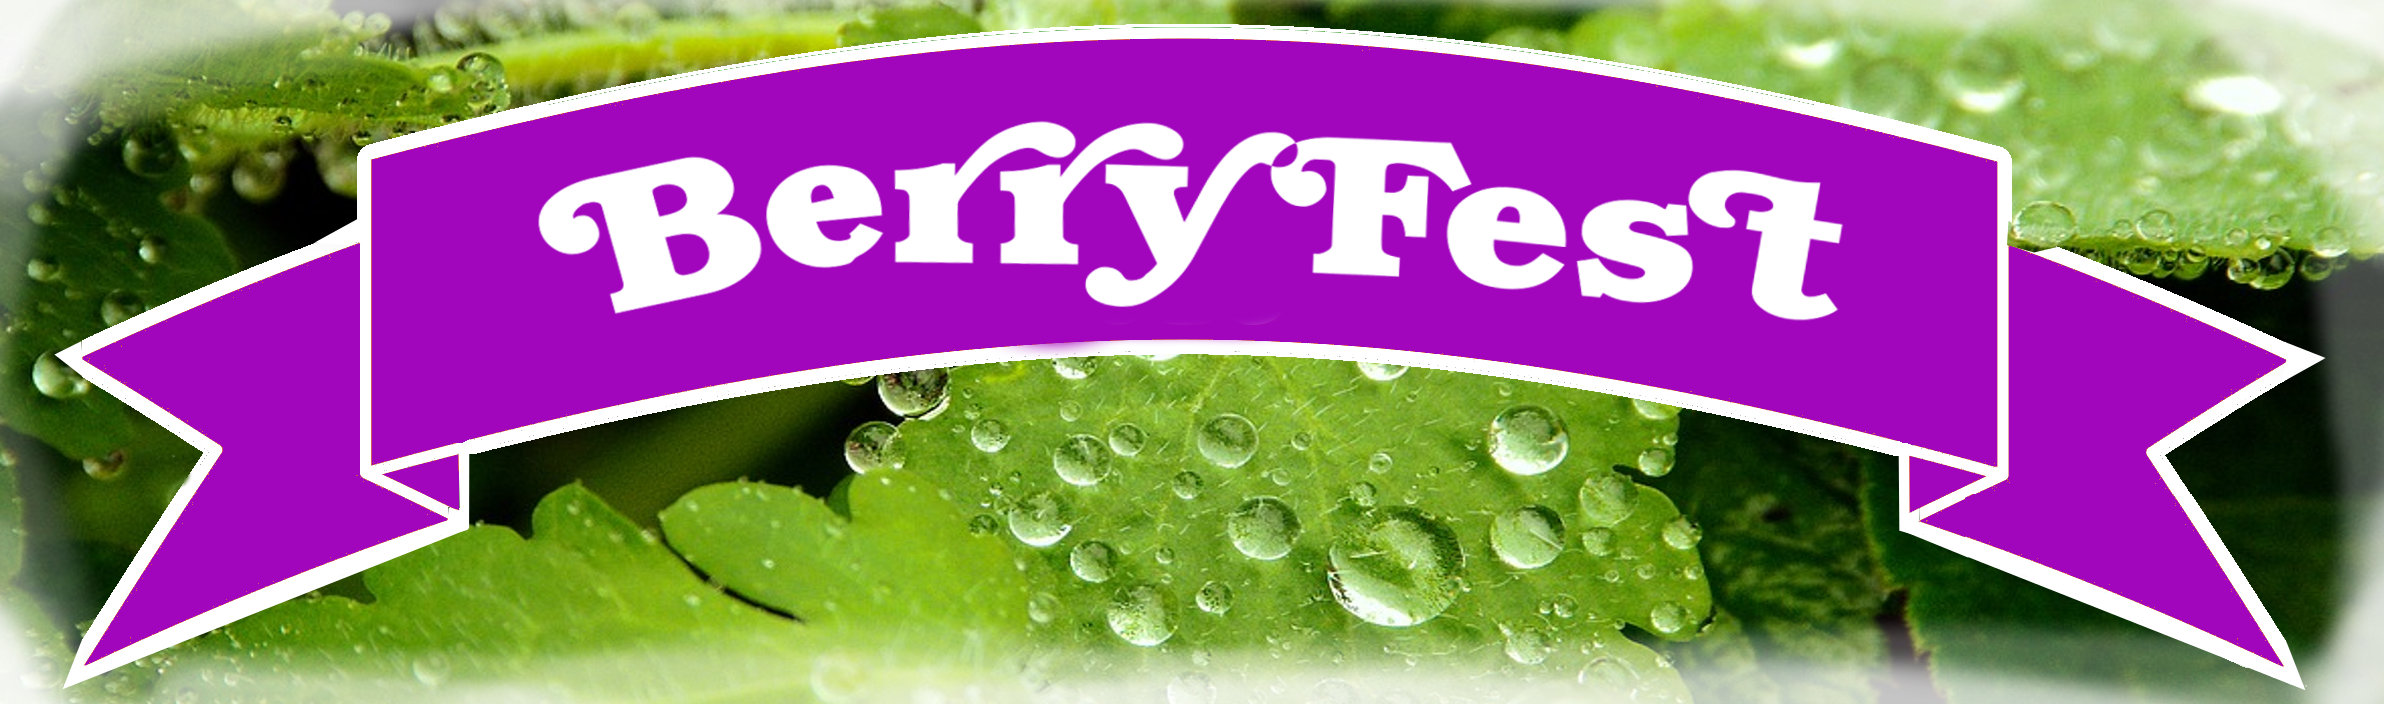 Murray Farm Fest BerryFest ribbon oN gREEN.png